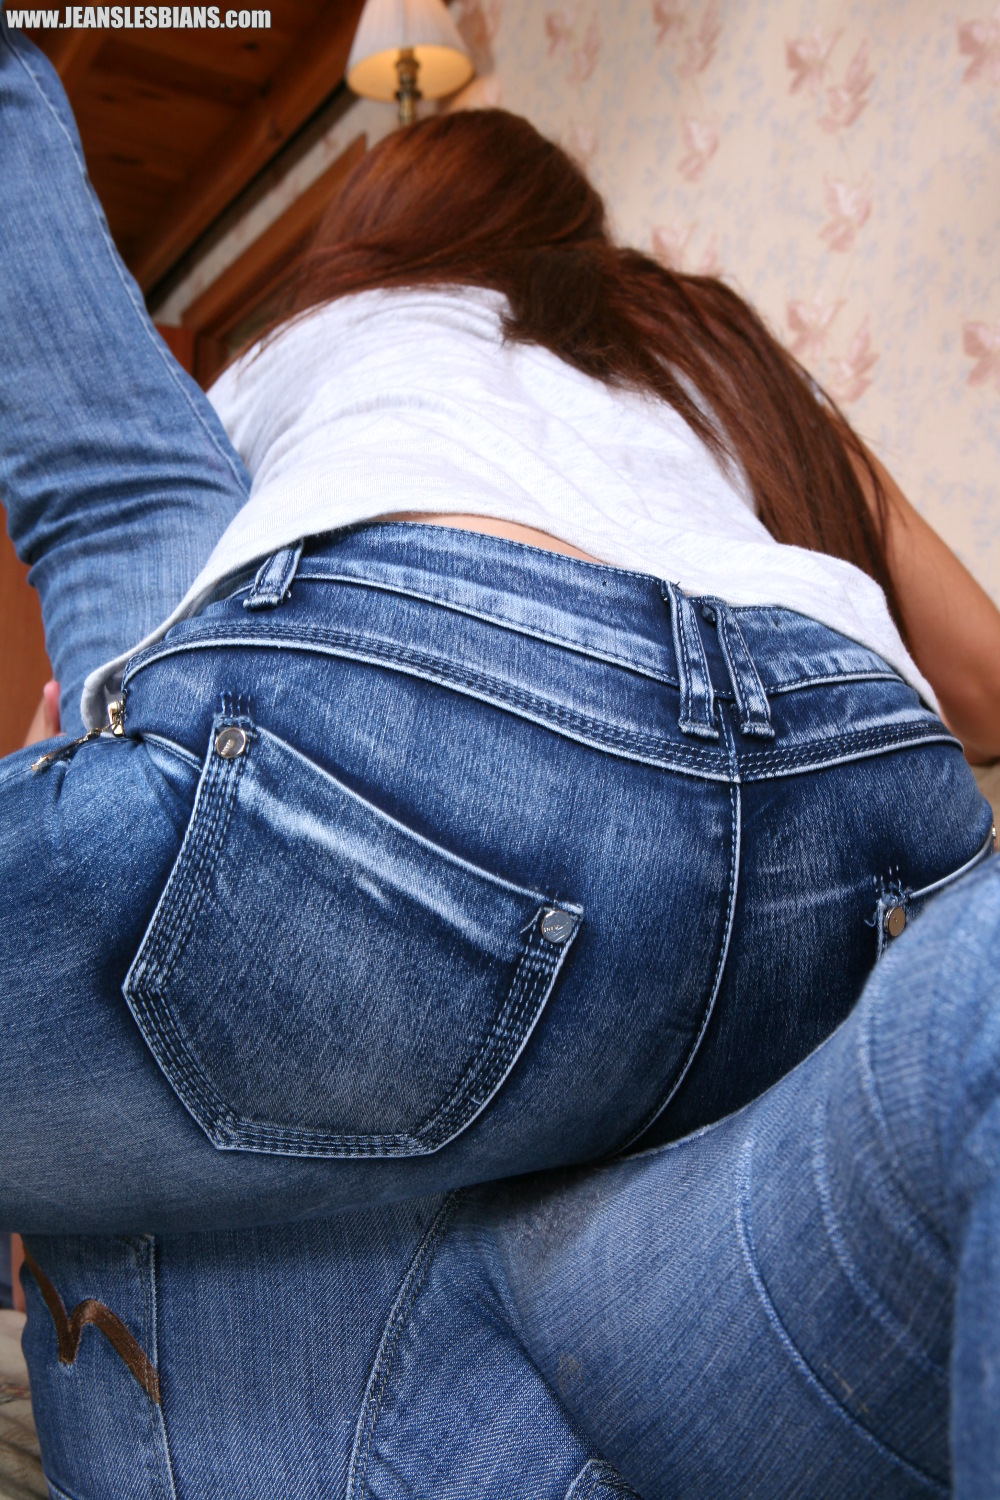 The Tight jeans lesbian minority classical